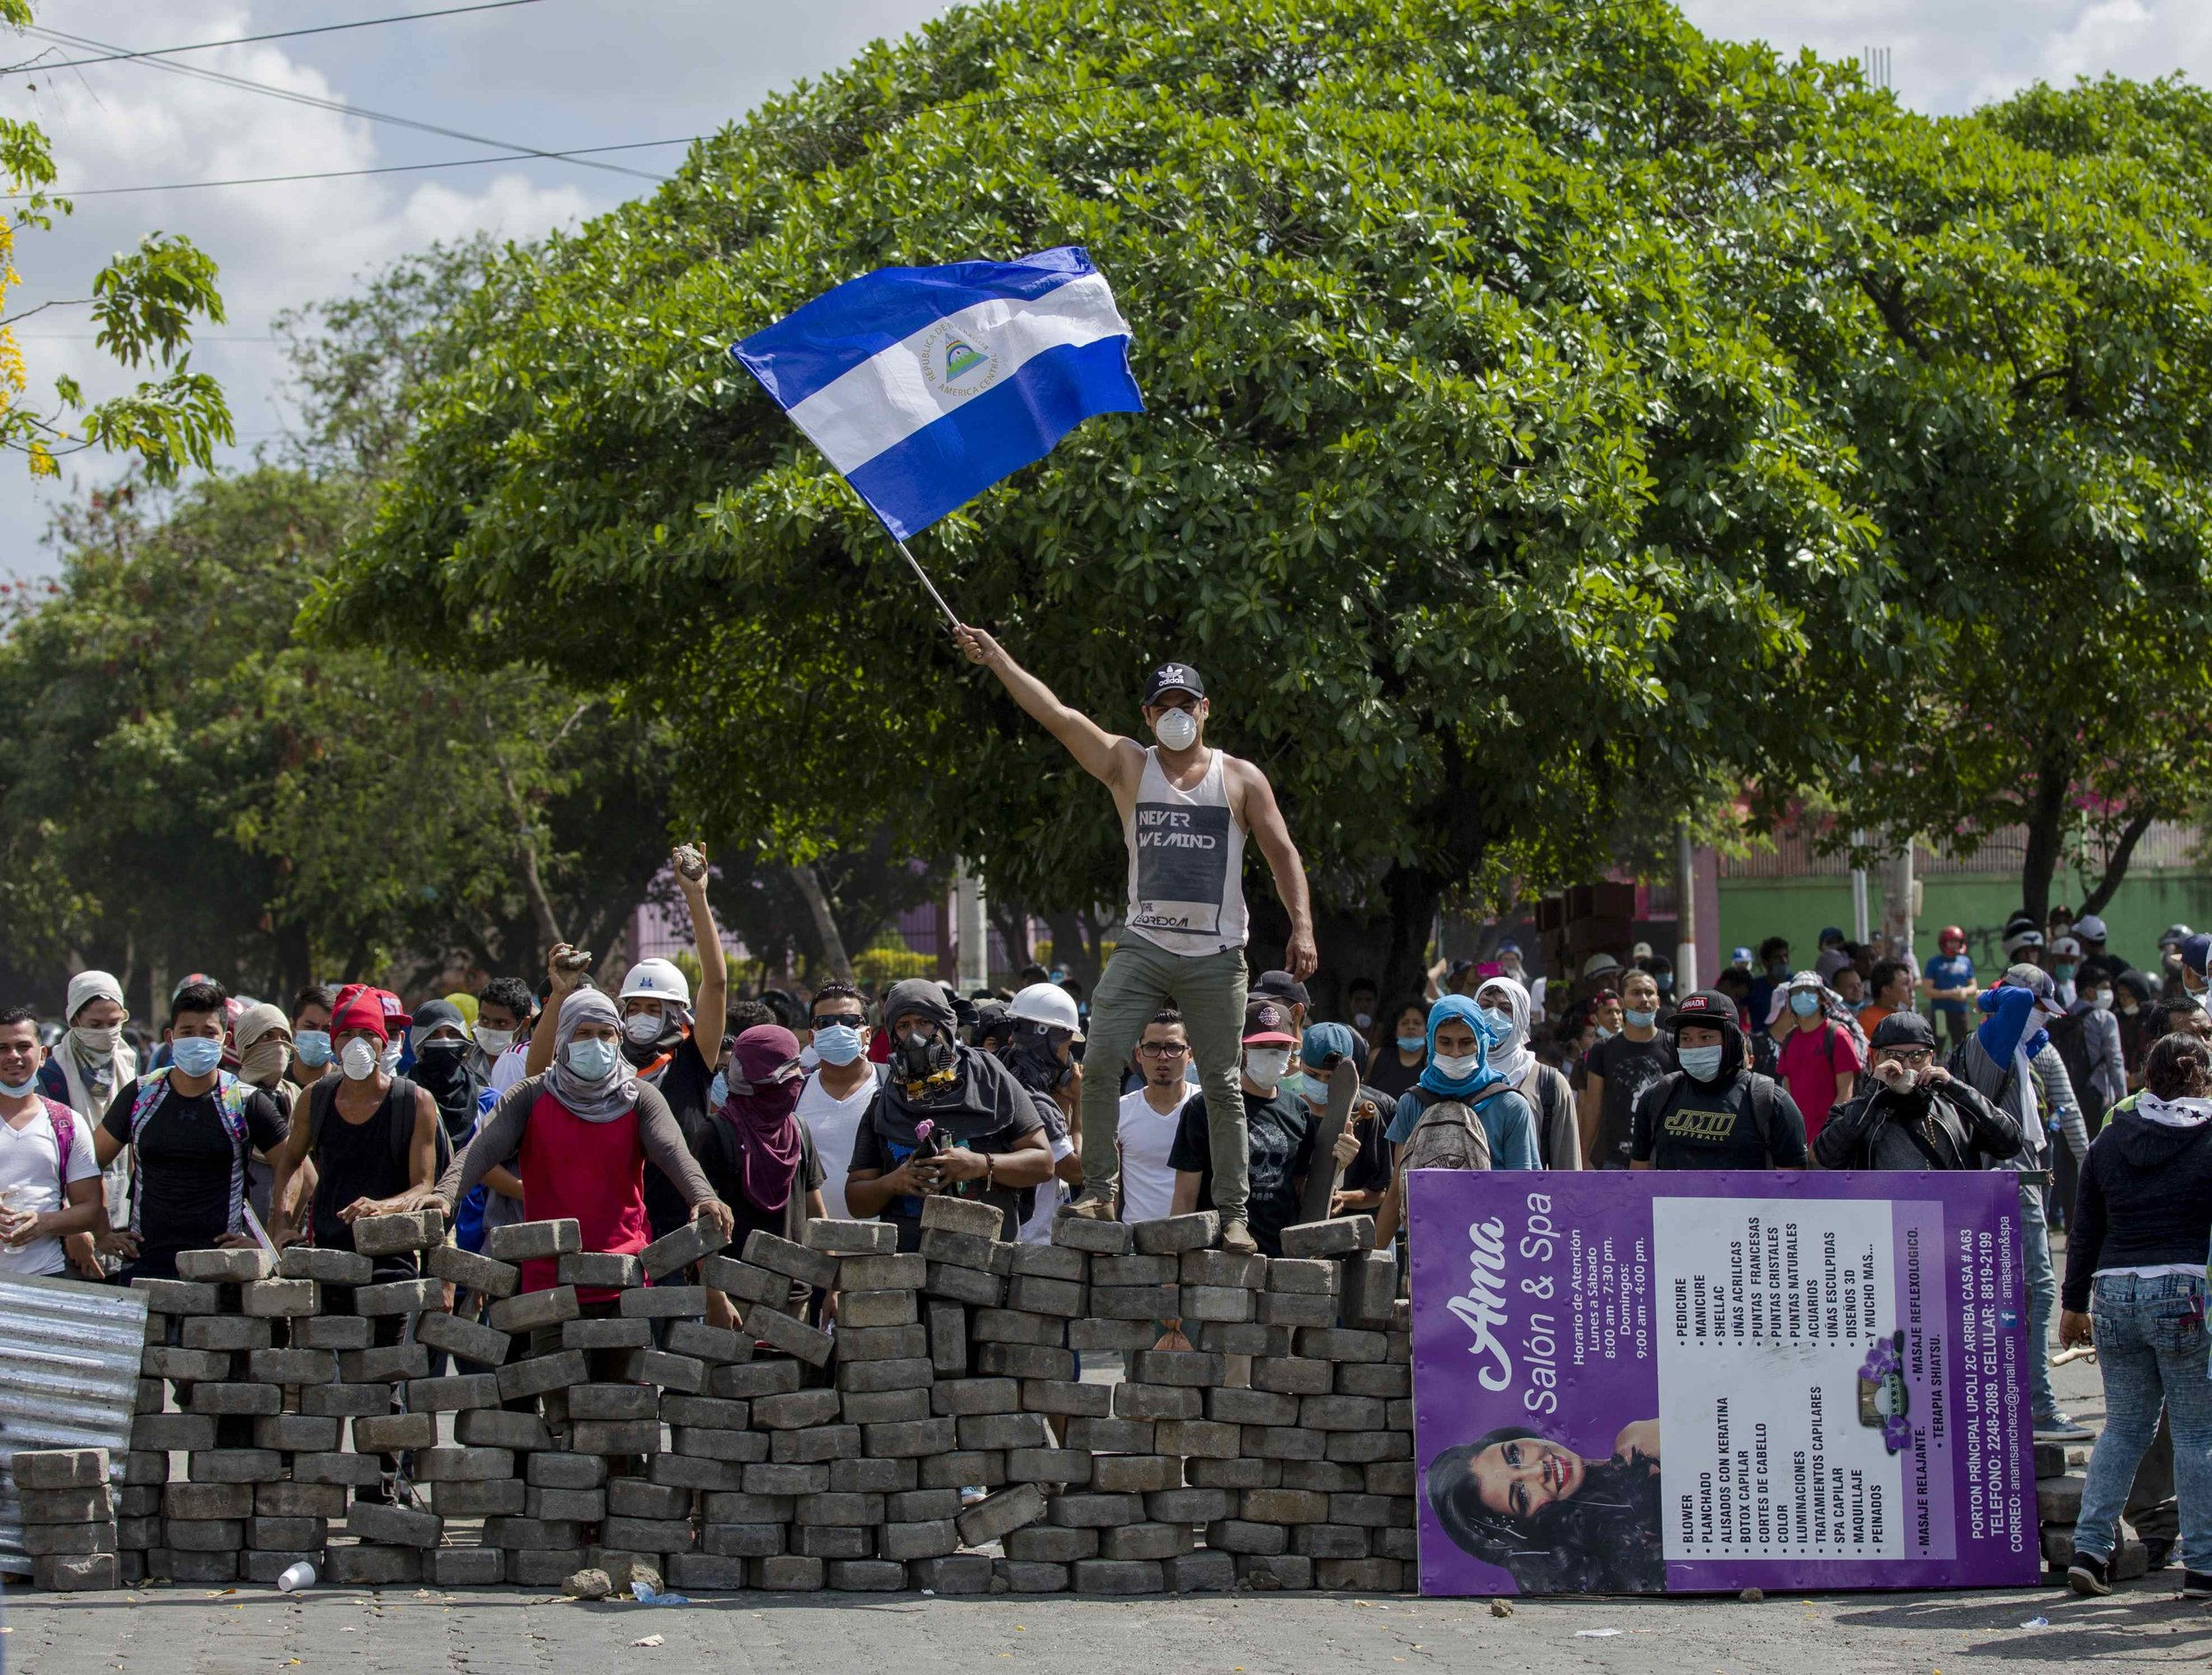 20180423T1031-0421-CNS-POPE-NICARAGUA-PROTESTS.jpg